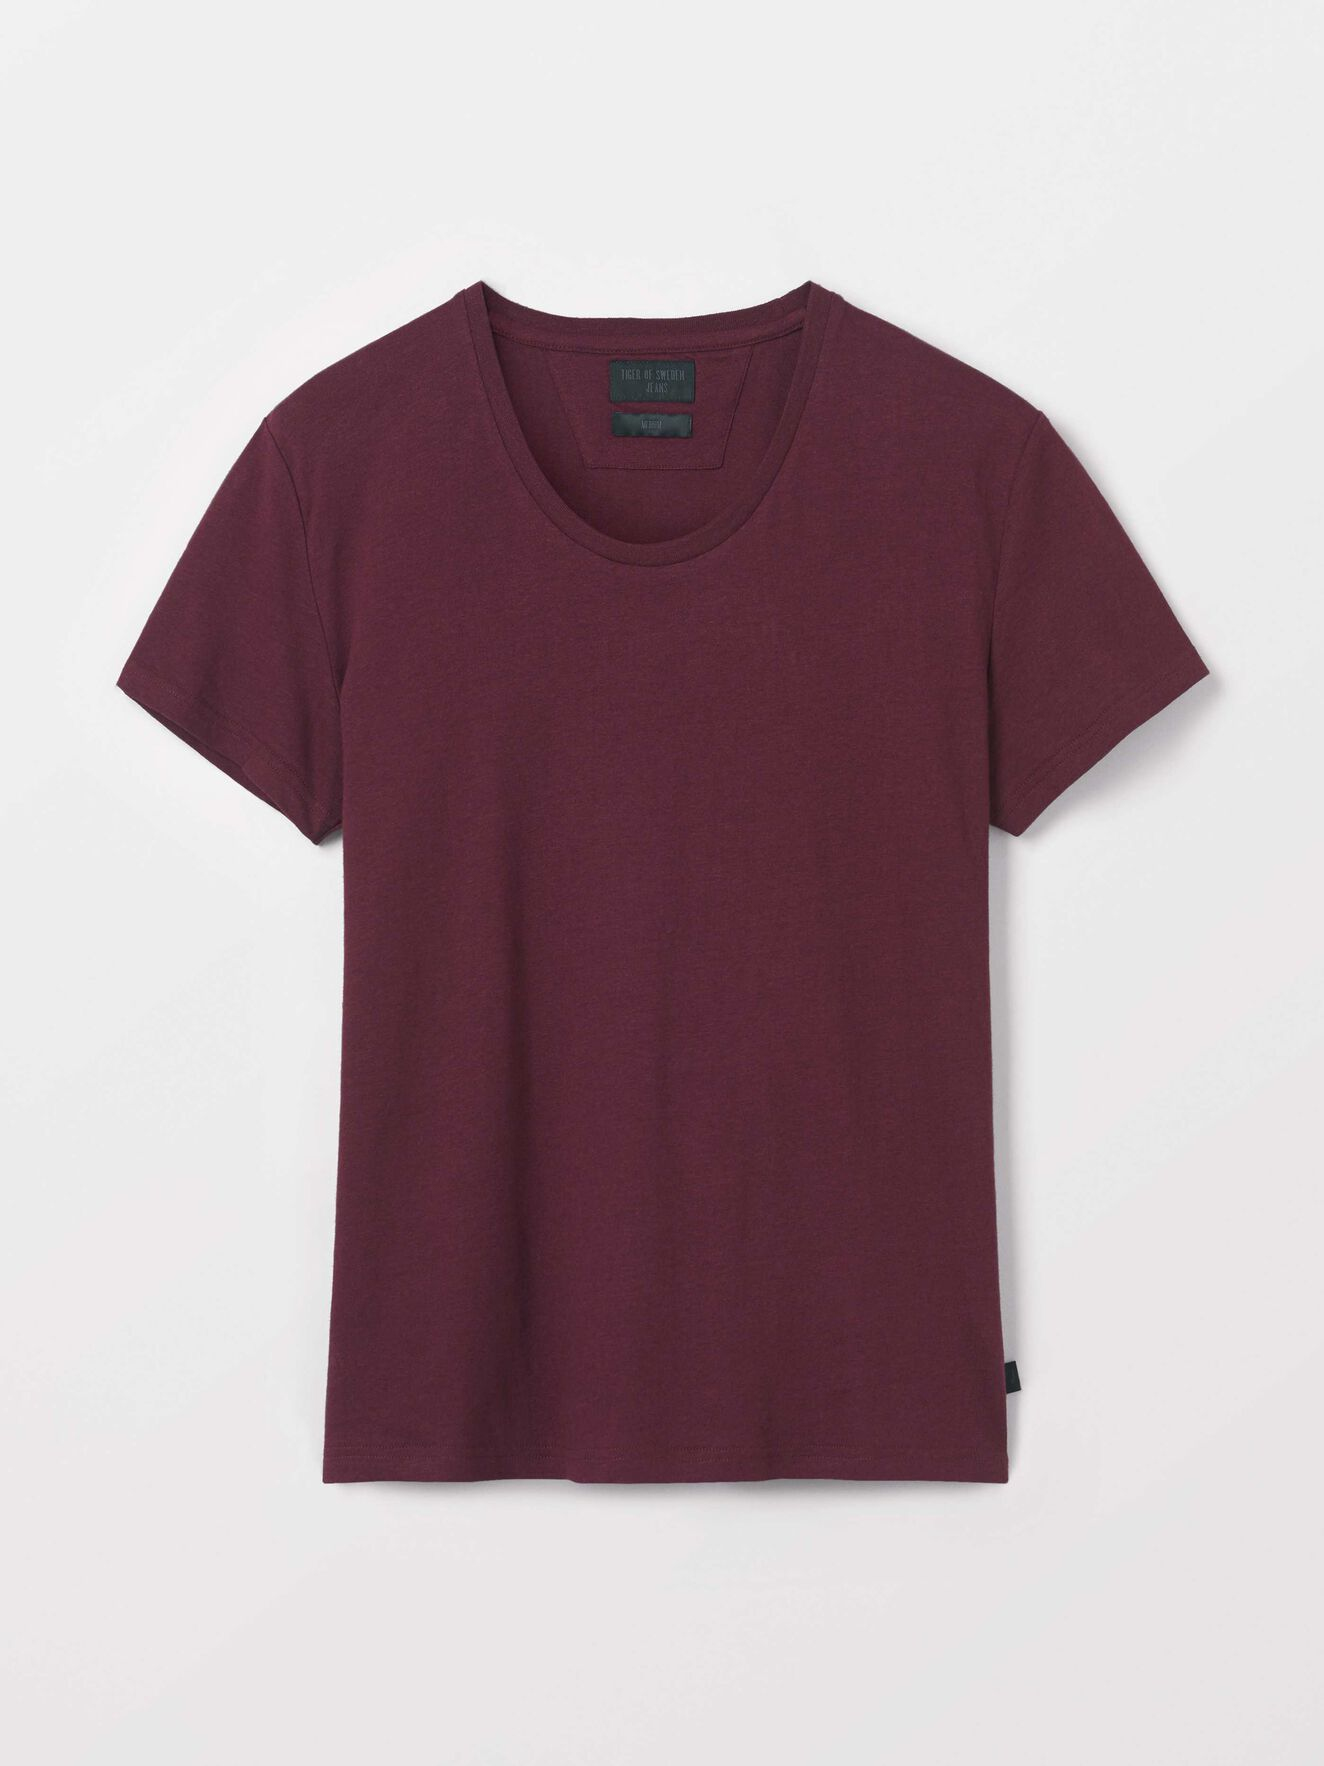 Faxe T-Shirt in Deep Ruby from Tiger of Sweden